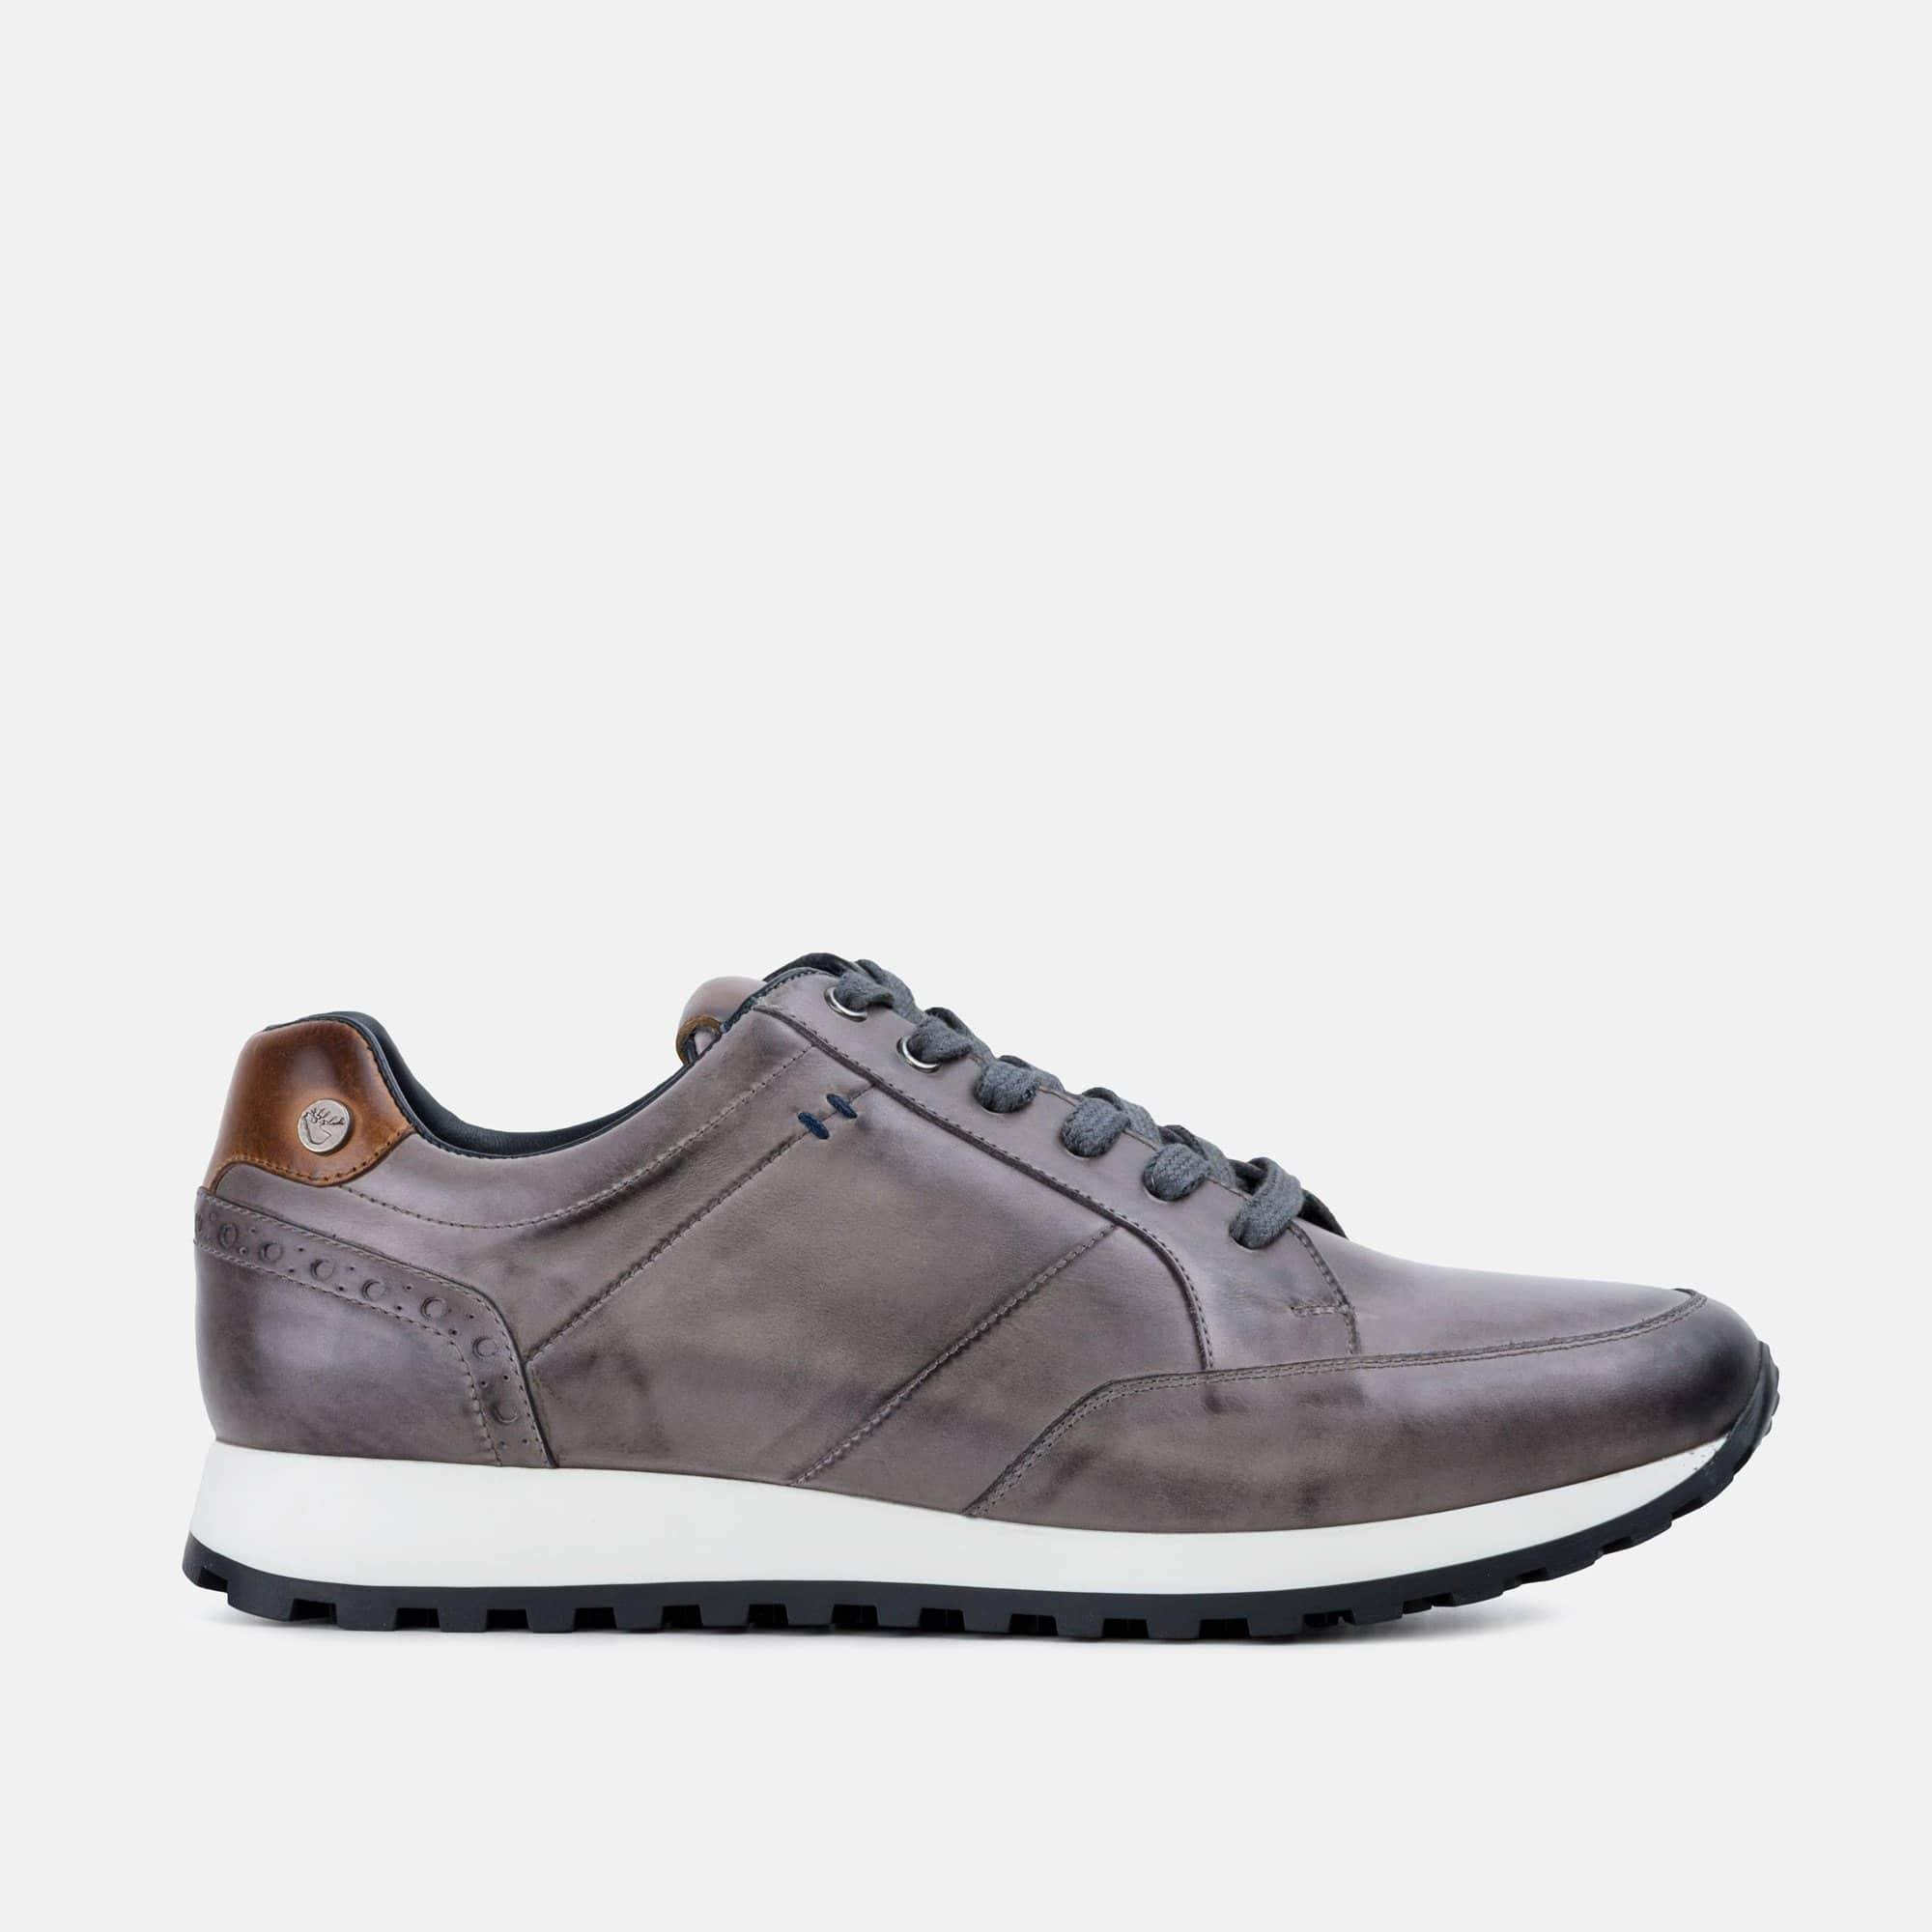 trainers that look like smart shoes